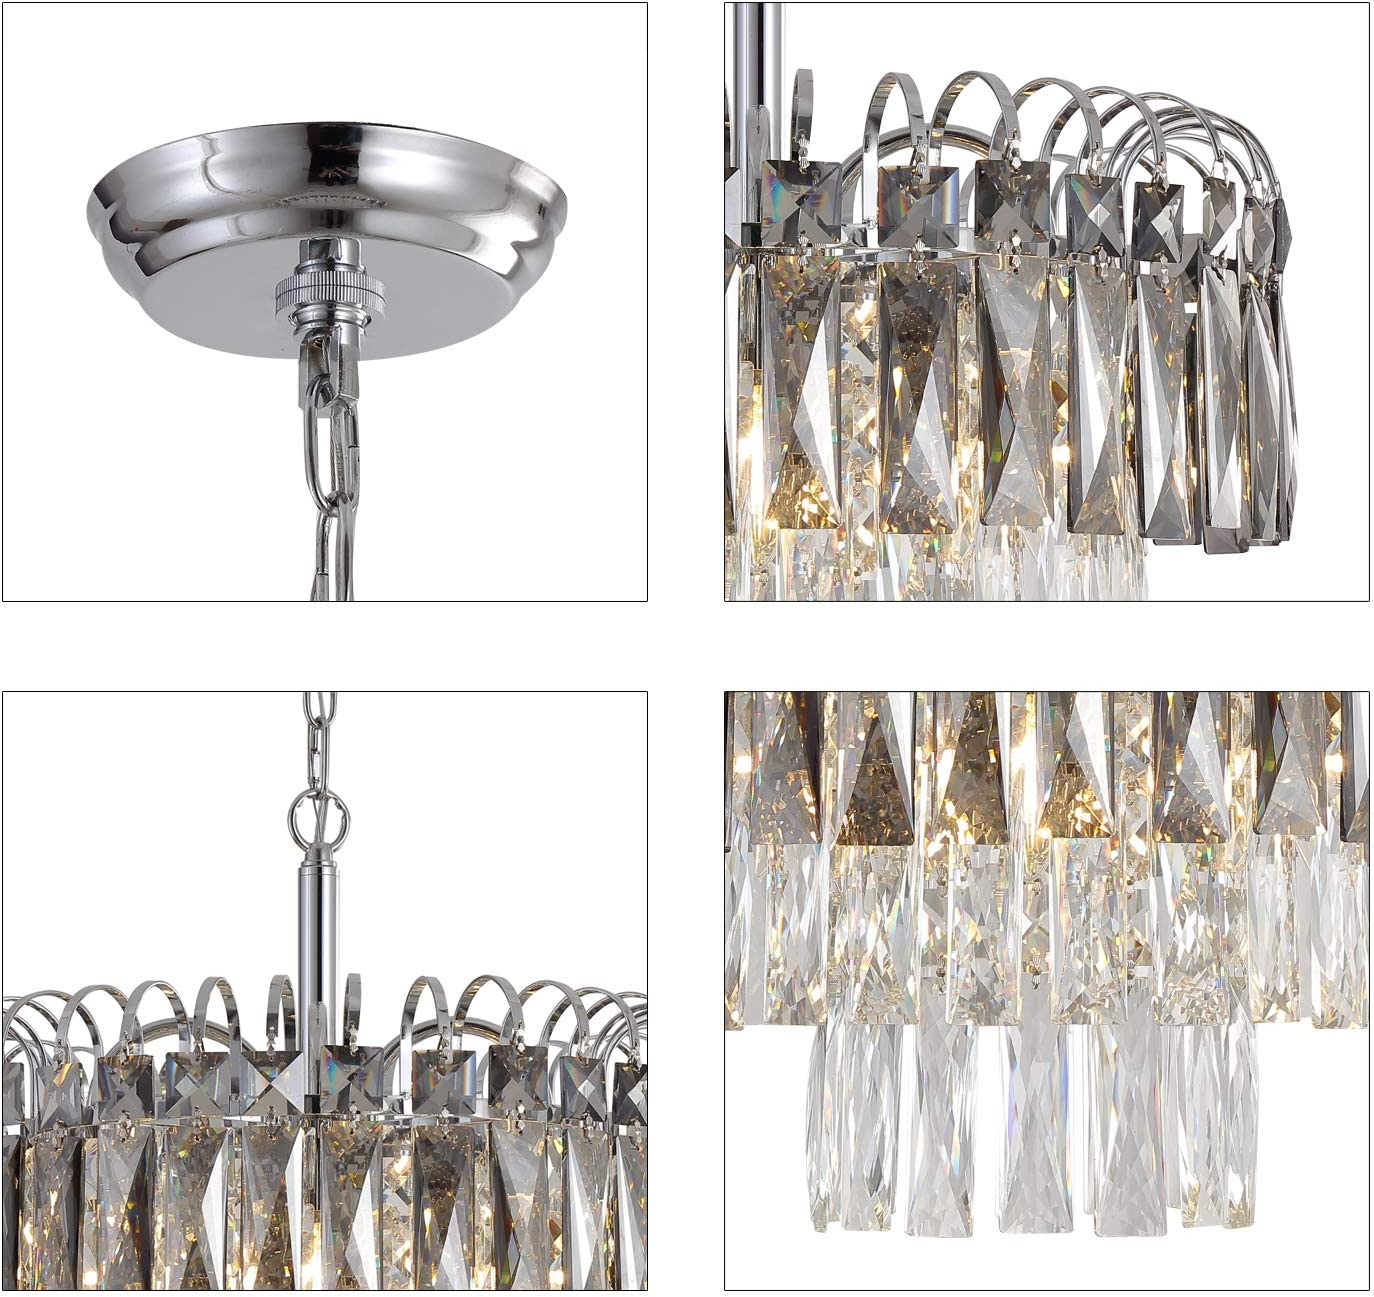 "Q&S Crystal Chandelier Lighting, Modern Chrome Chandeliers, K9 Crystal Smoky+Clear, 4 Lights Pendant Light Ceiling Light Fixture For Dining Room, Living Room, Kitchen Island,W17.1"".: Home Improvement"